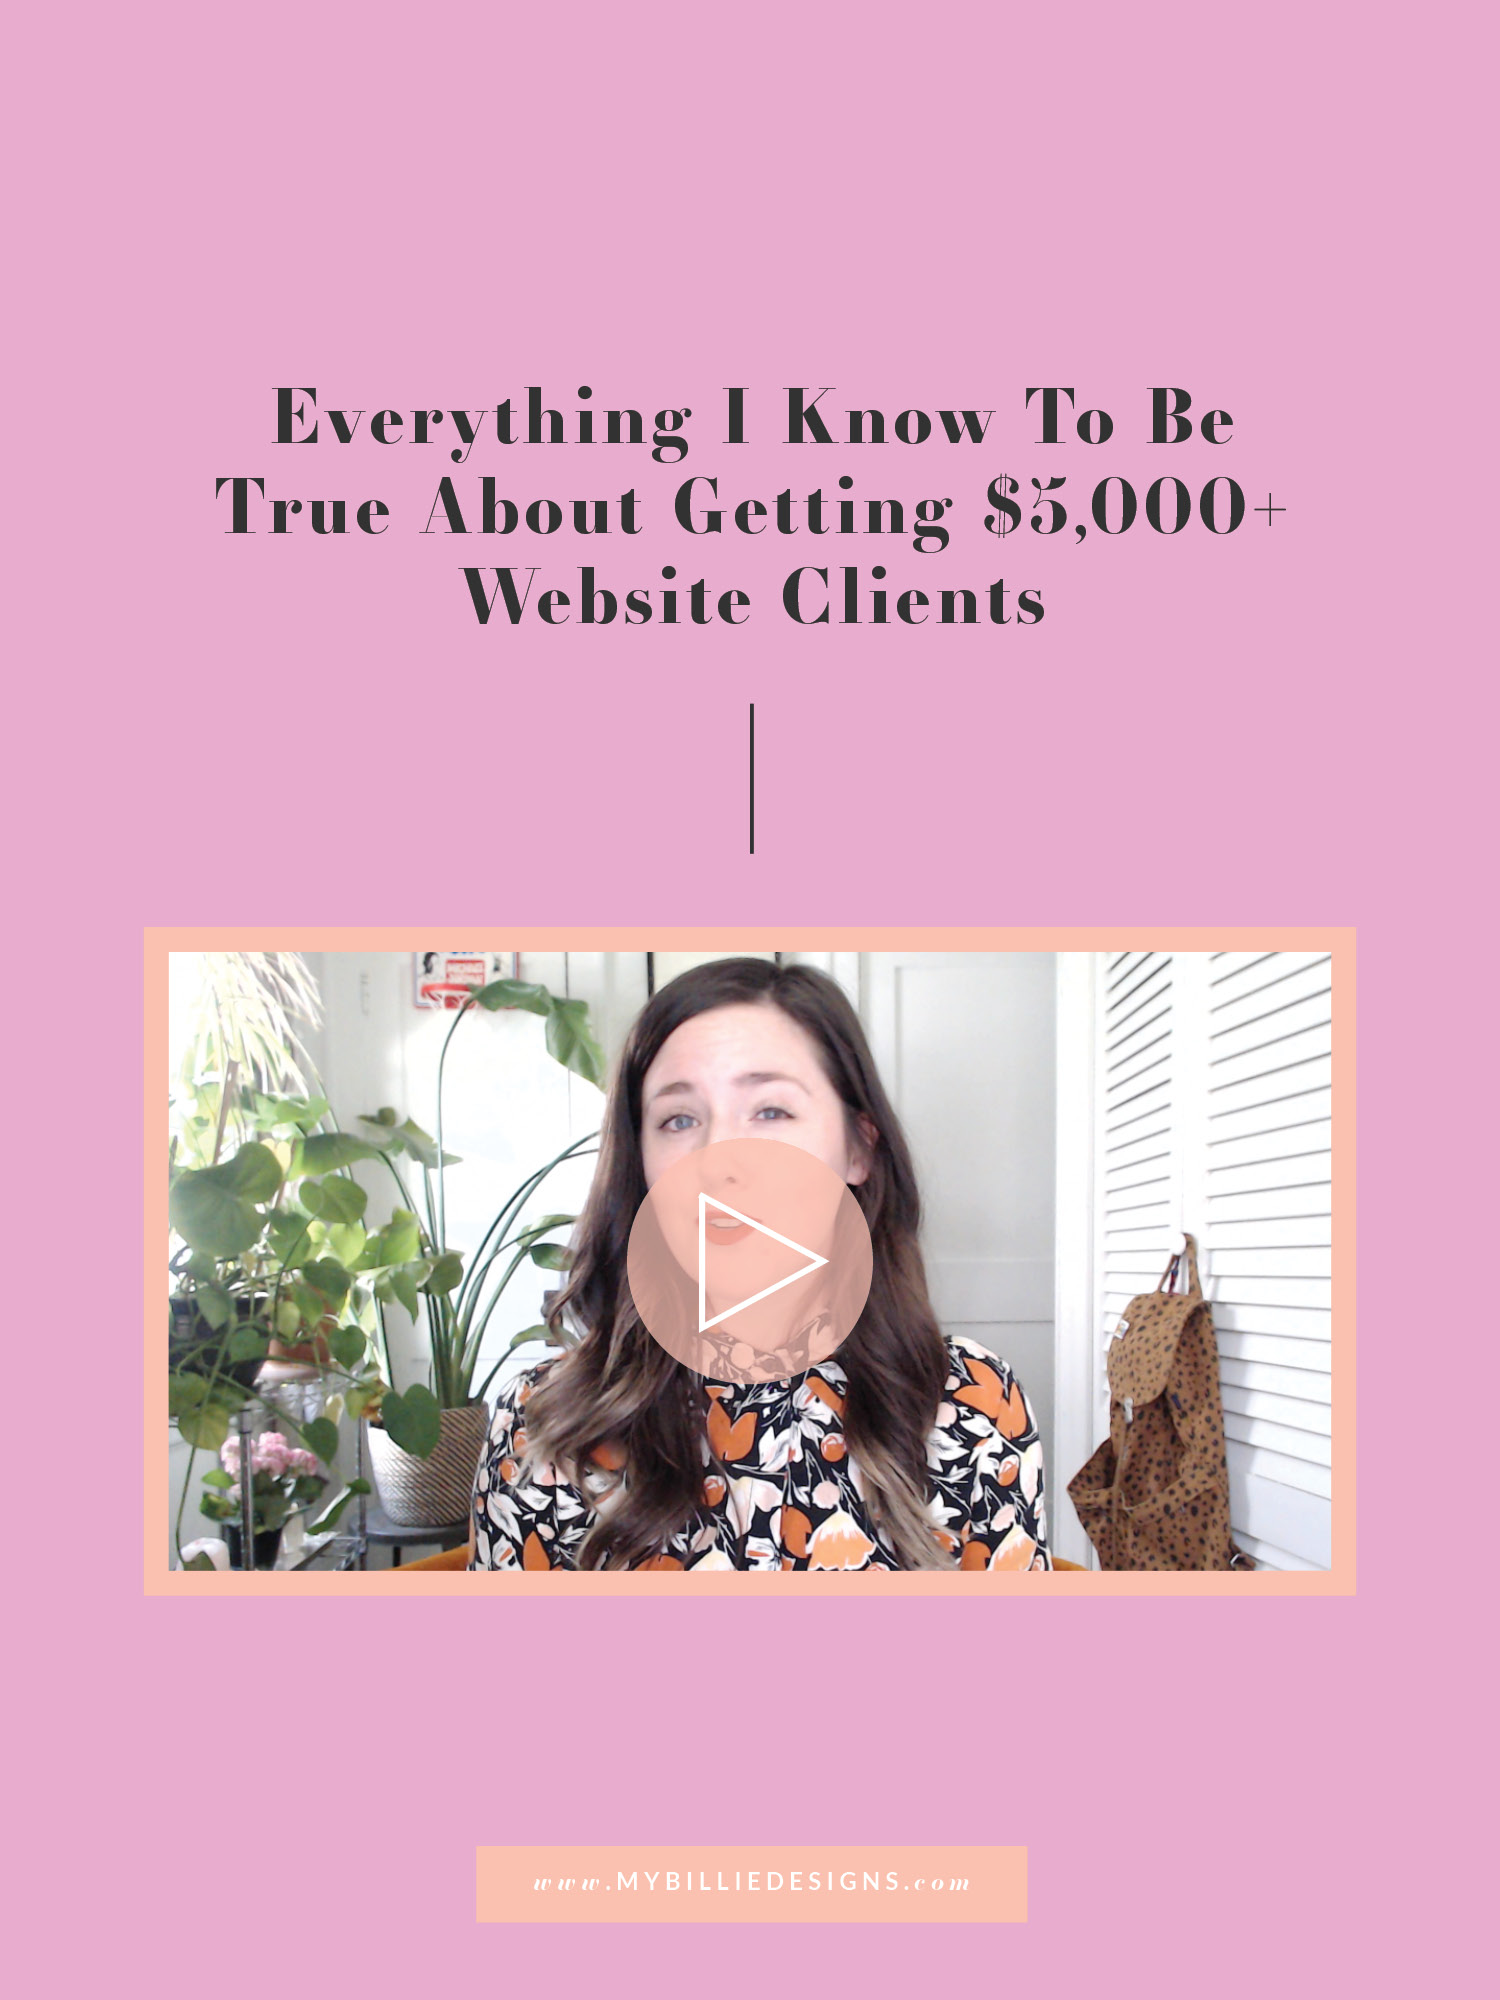 Everything I know to be true about getting $5,000+ website clients